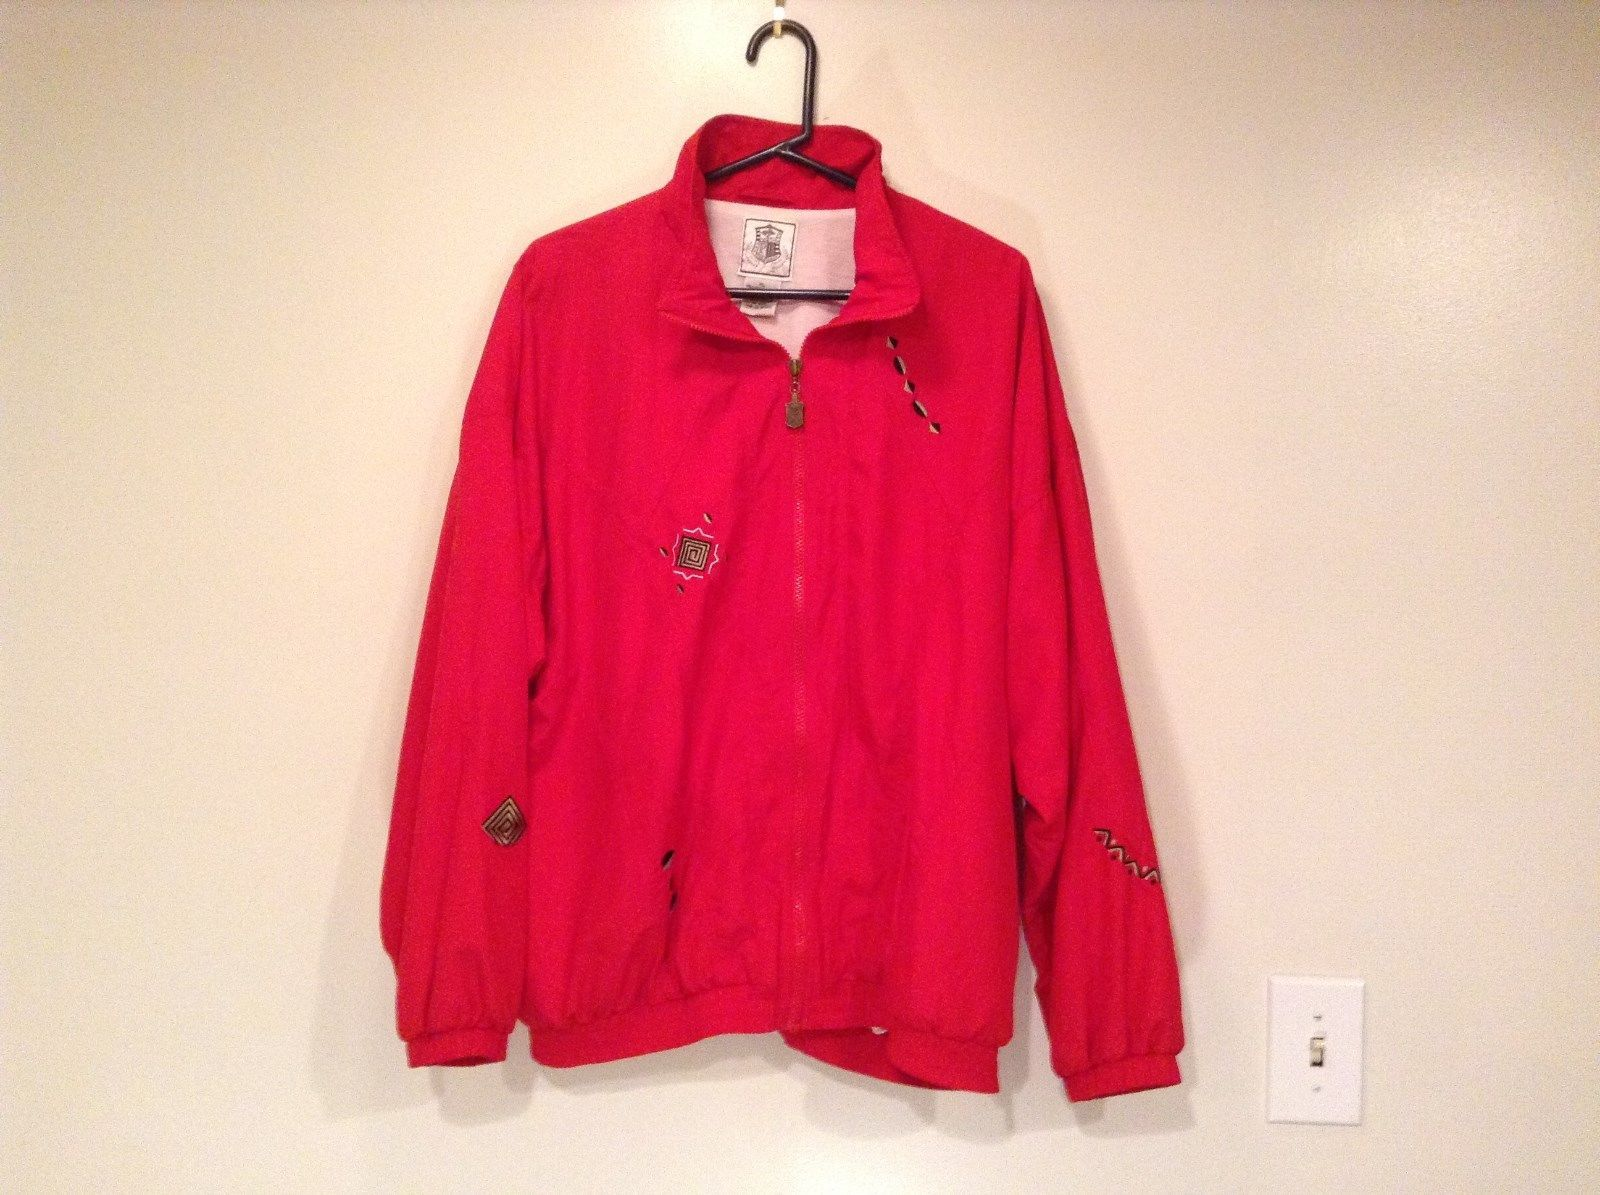 Pebble Beach Red Windbreaker Jacket Fully Lined Elastic Waist Size XL Zipper